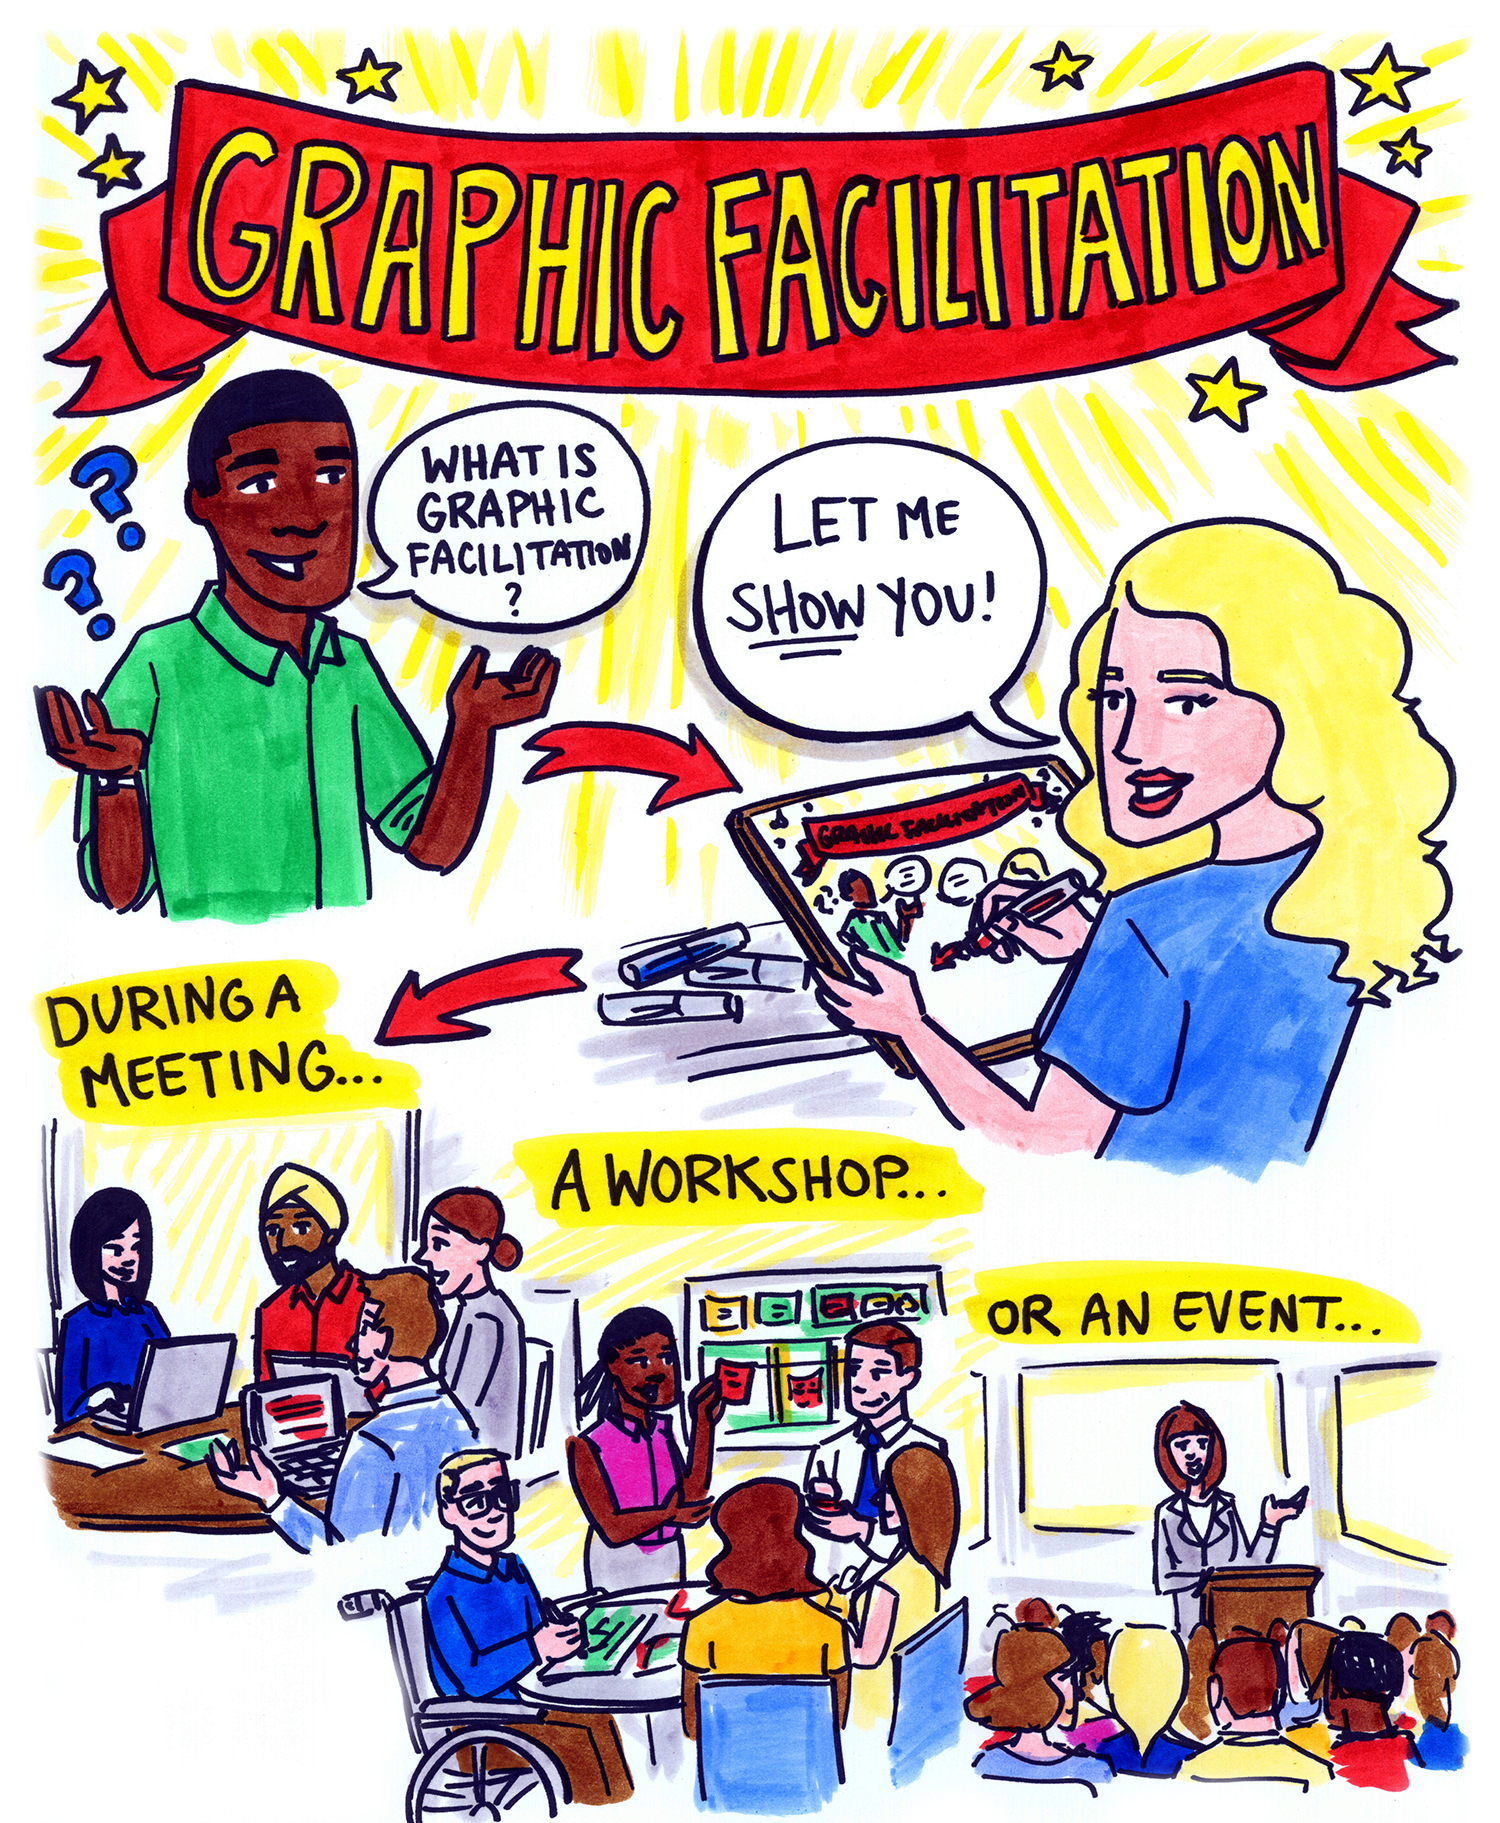 graphic_facilitation_1.jpg